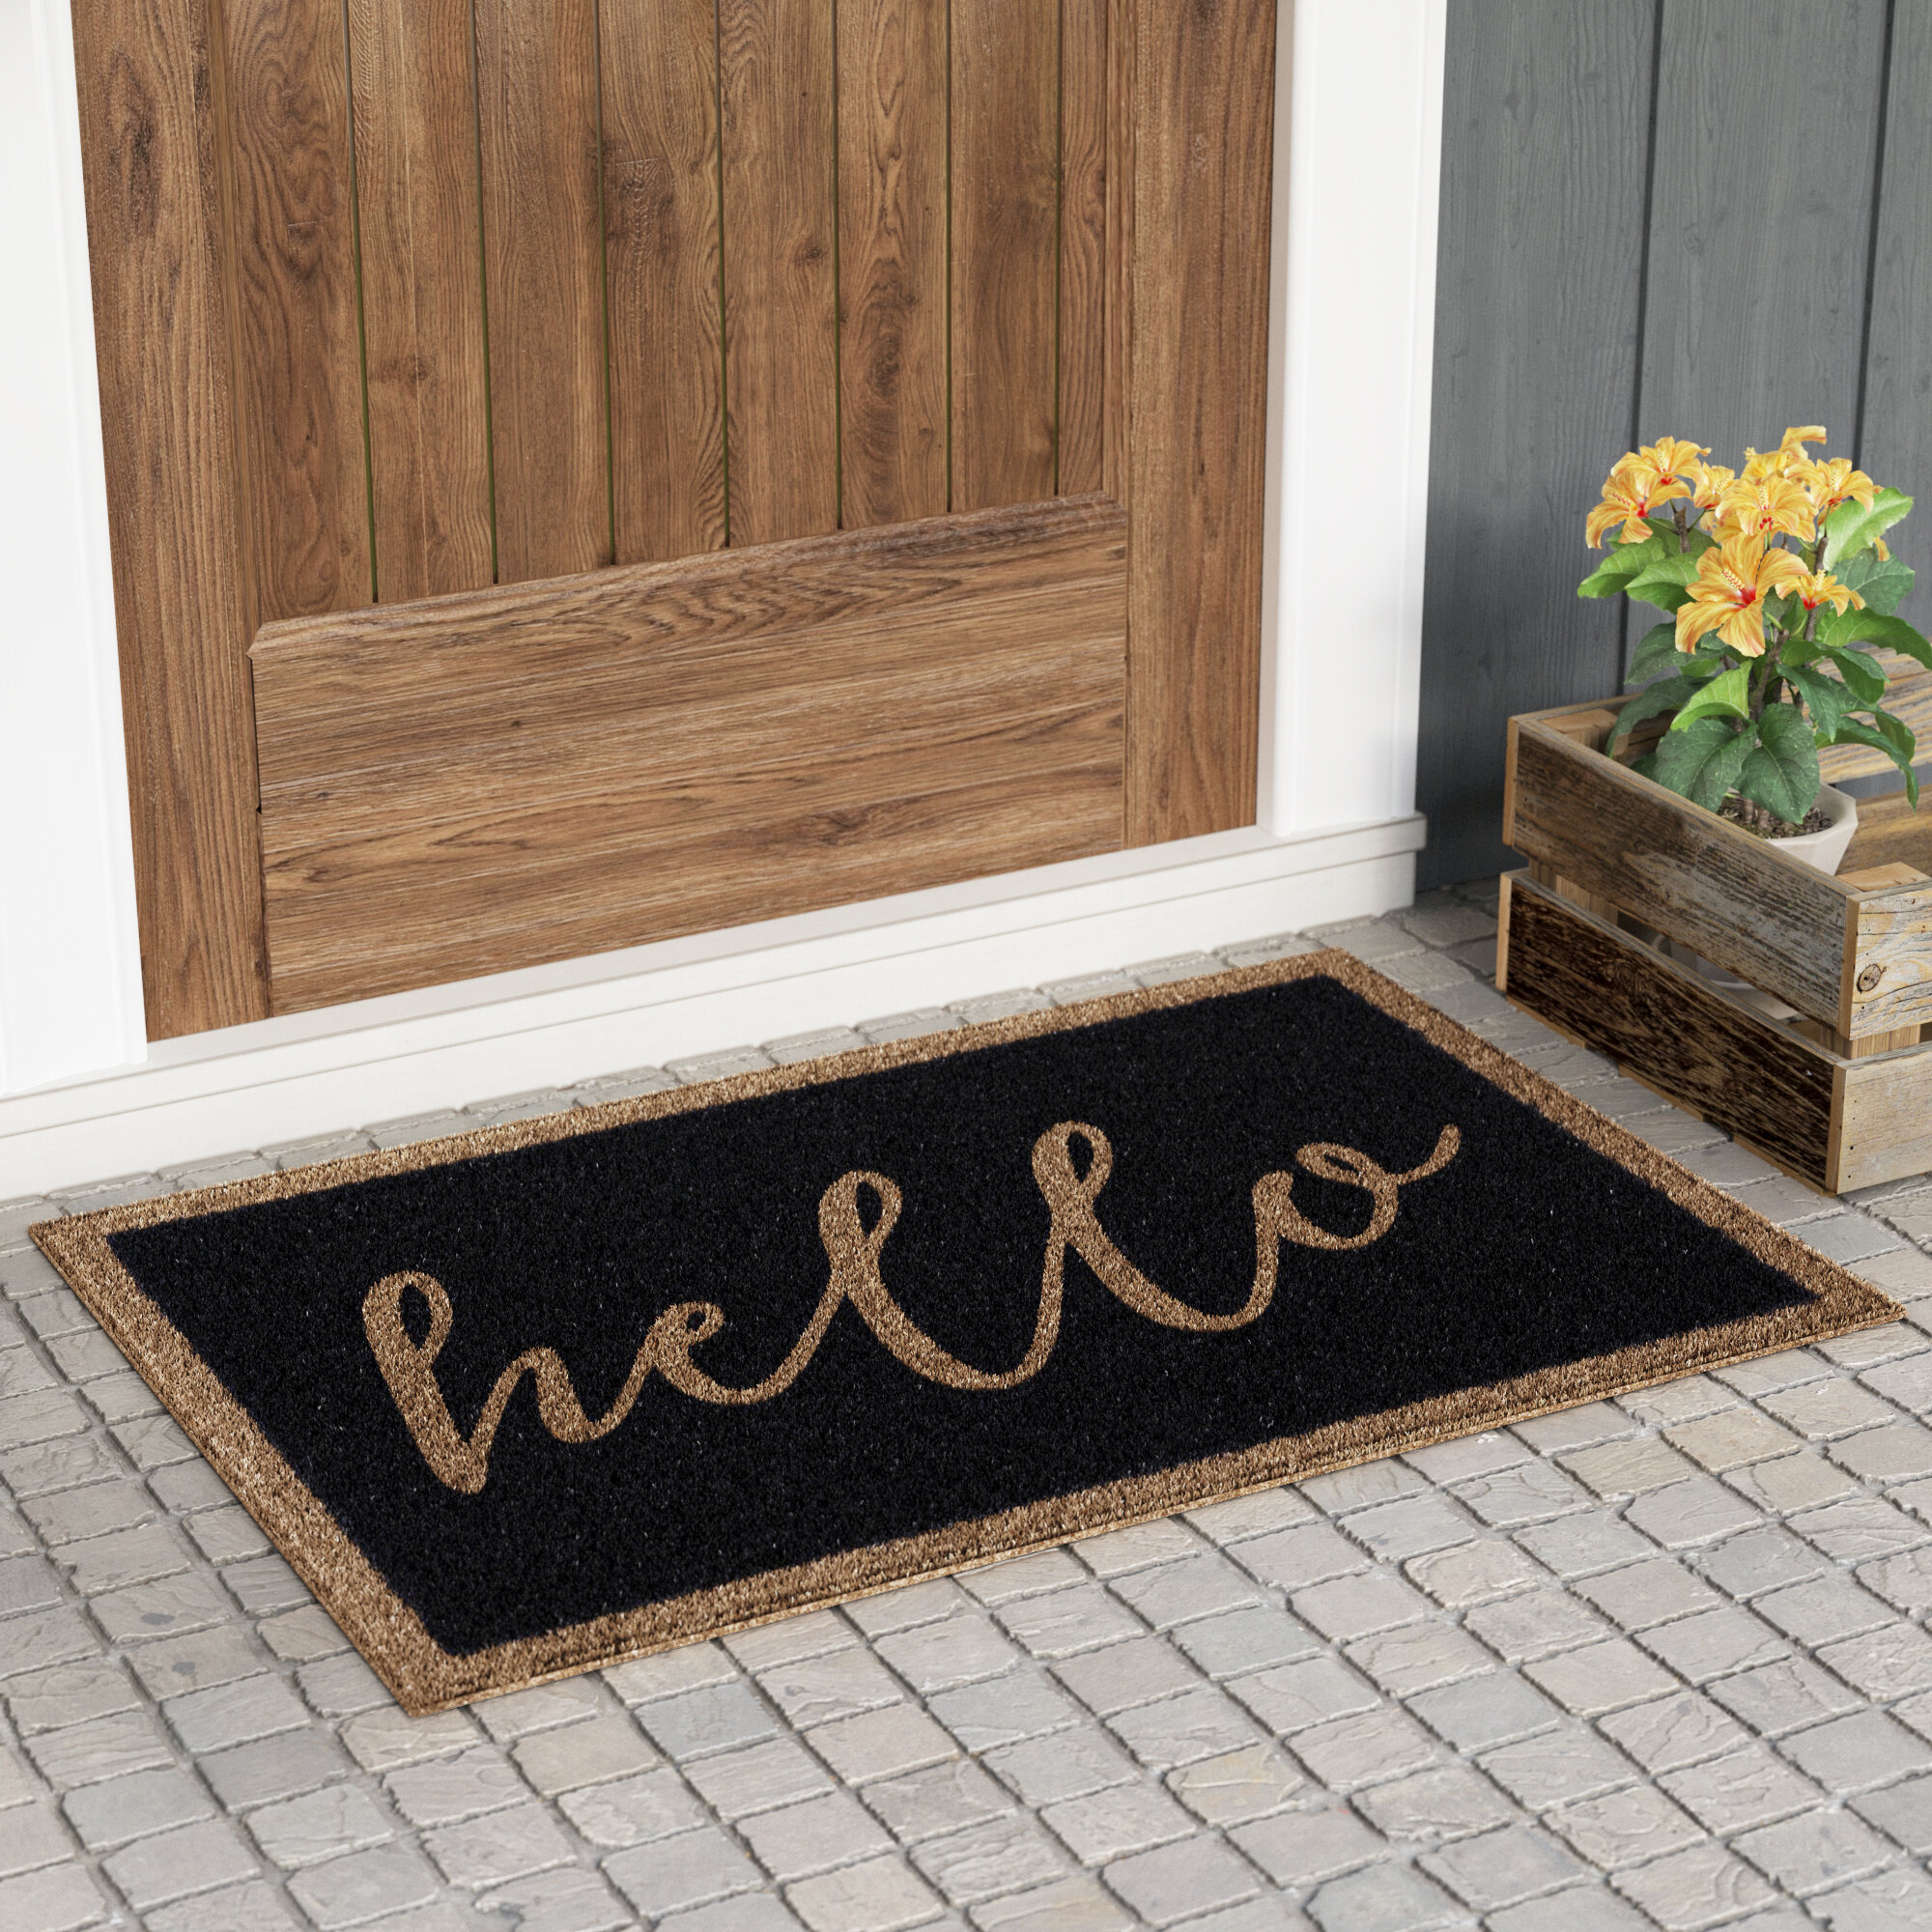 Gracie Oaks Heaney All Weather Personalized Non Slip Outdoor Door Mat Reviews Wayfair